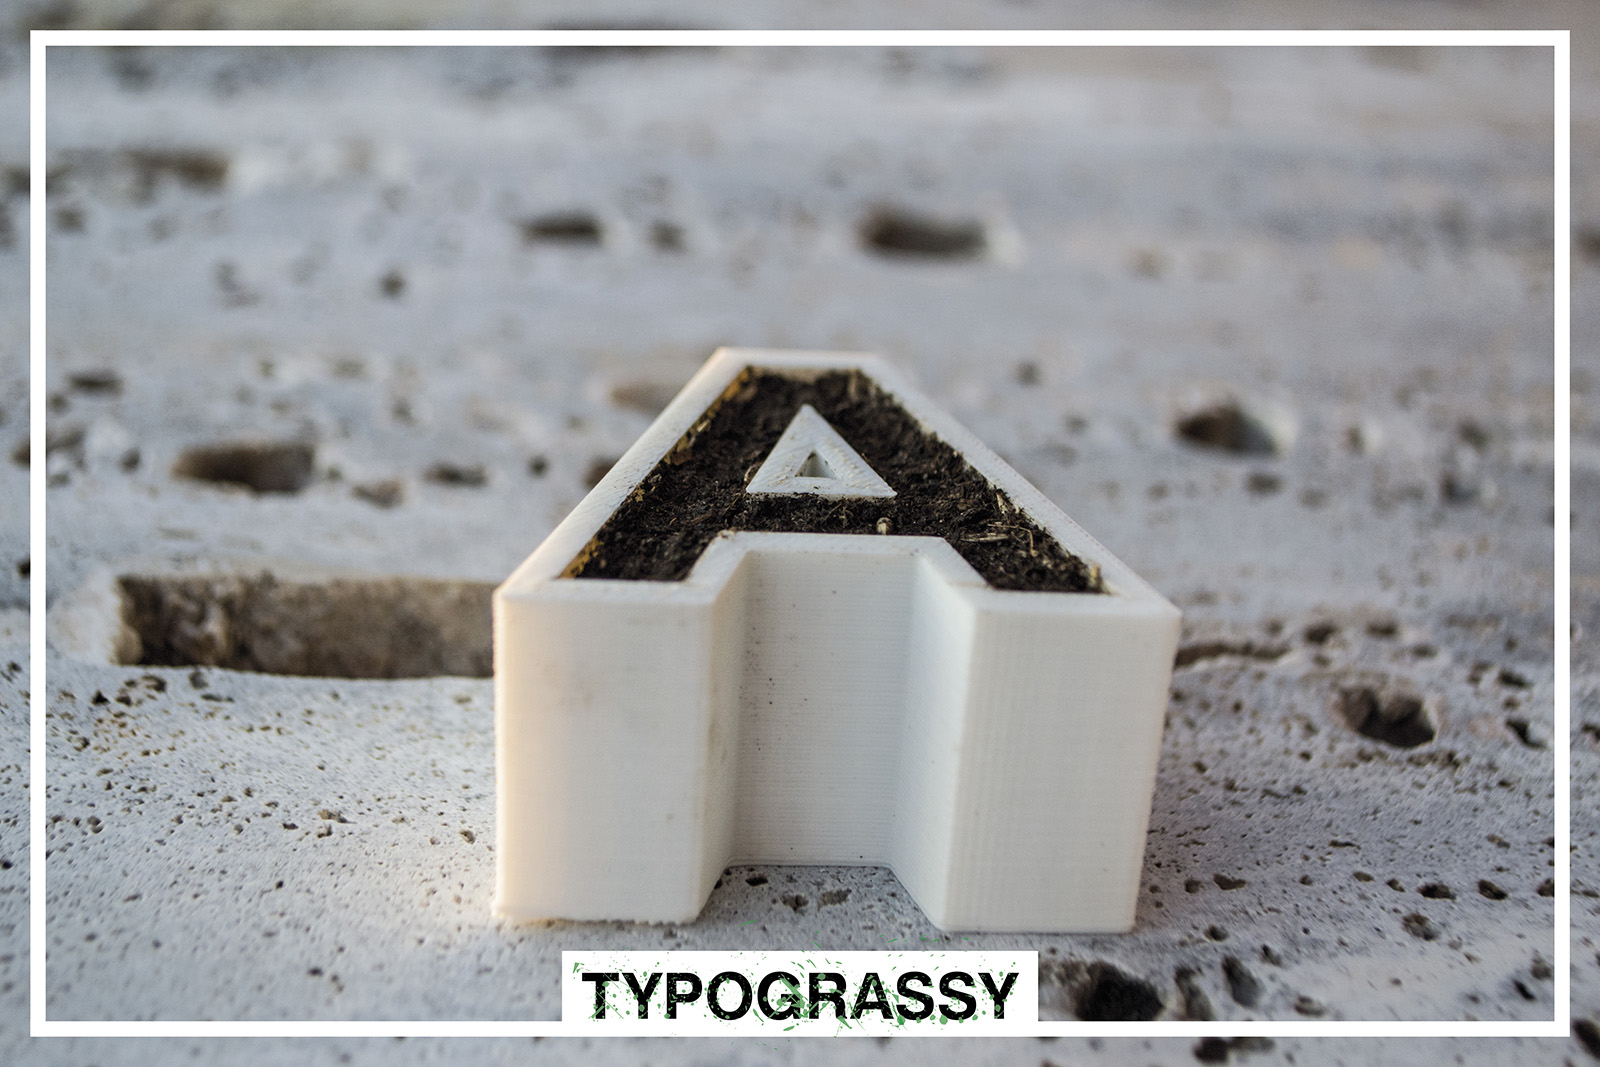 3D Printed letters and symbols with soil_2_Typograssy_3d product_yianart.com